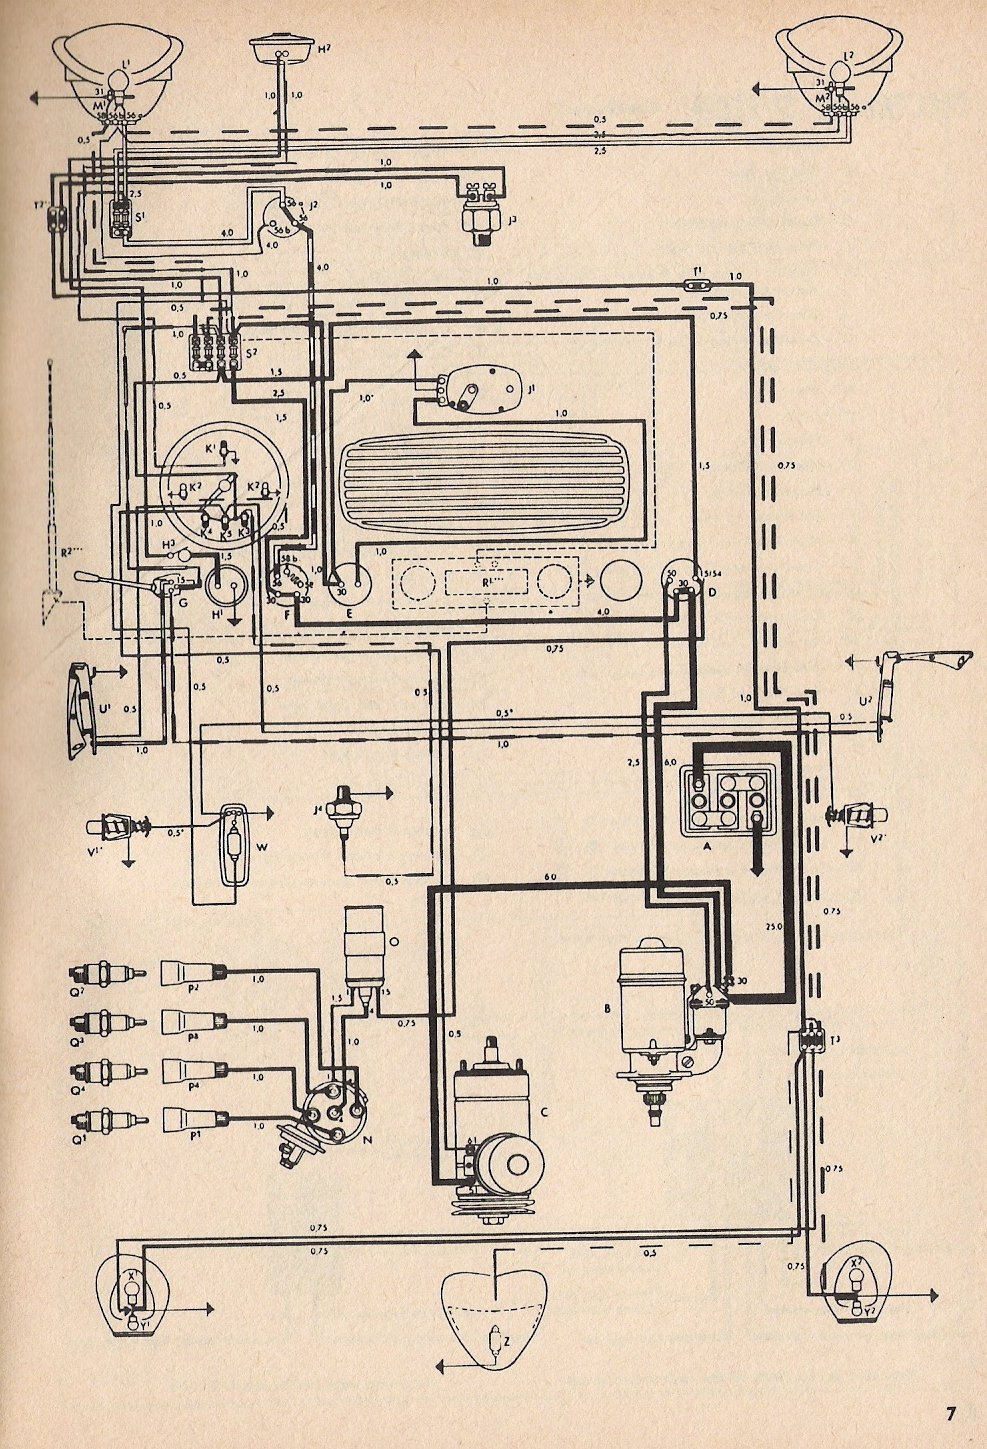 Gm Ignition Switch Wiring Diagram 1973 Library C10 Harness Thesamba Com Type 1 Diagrams